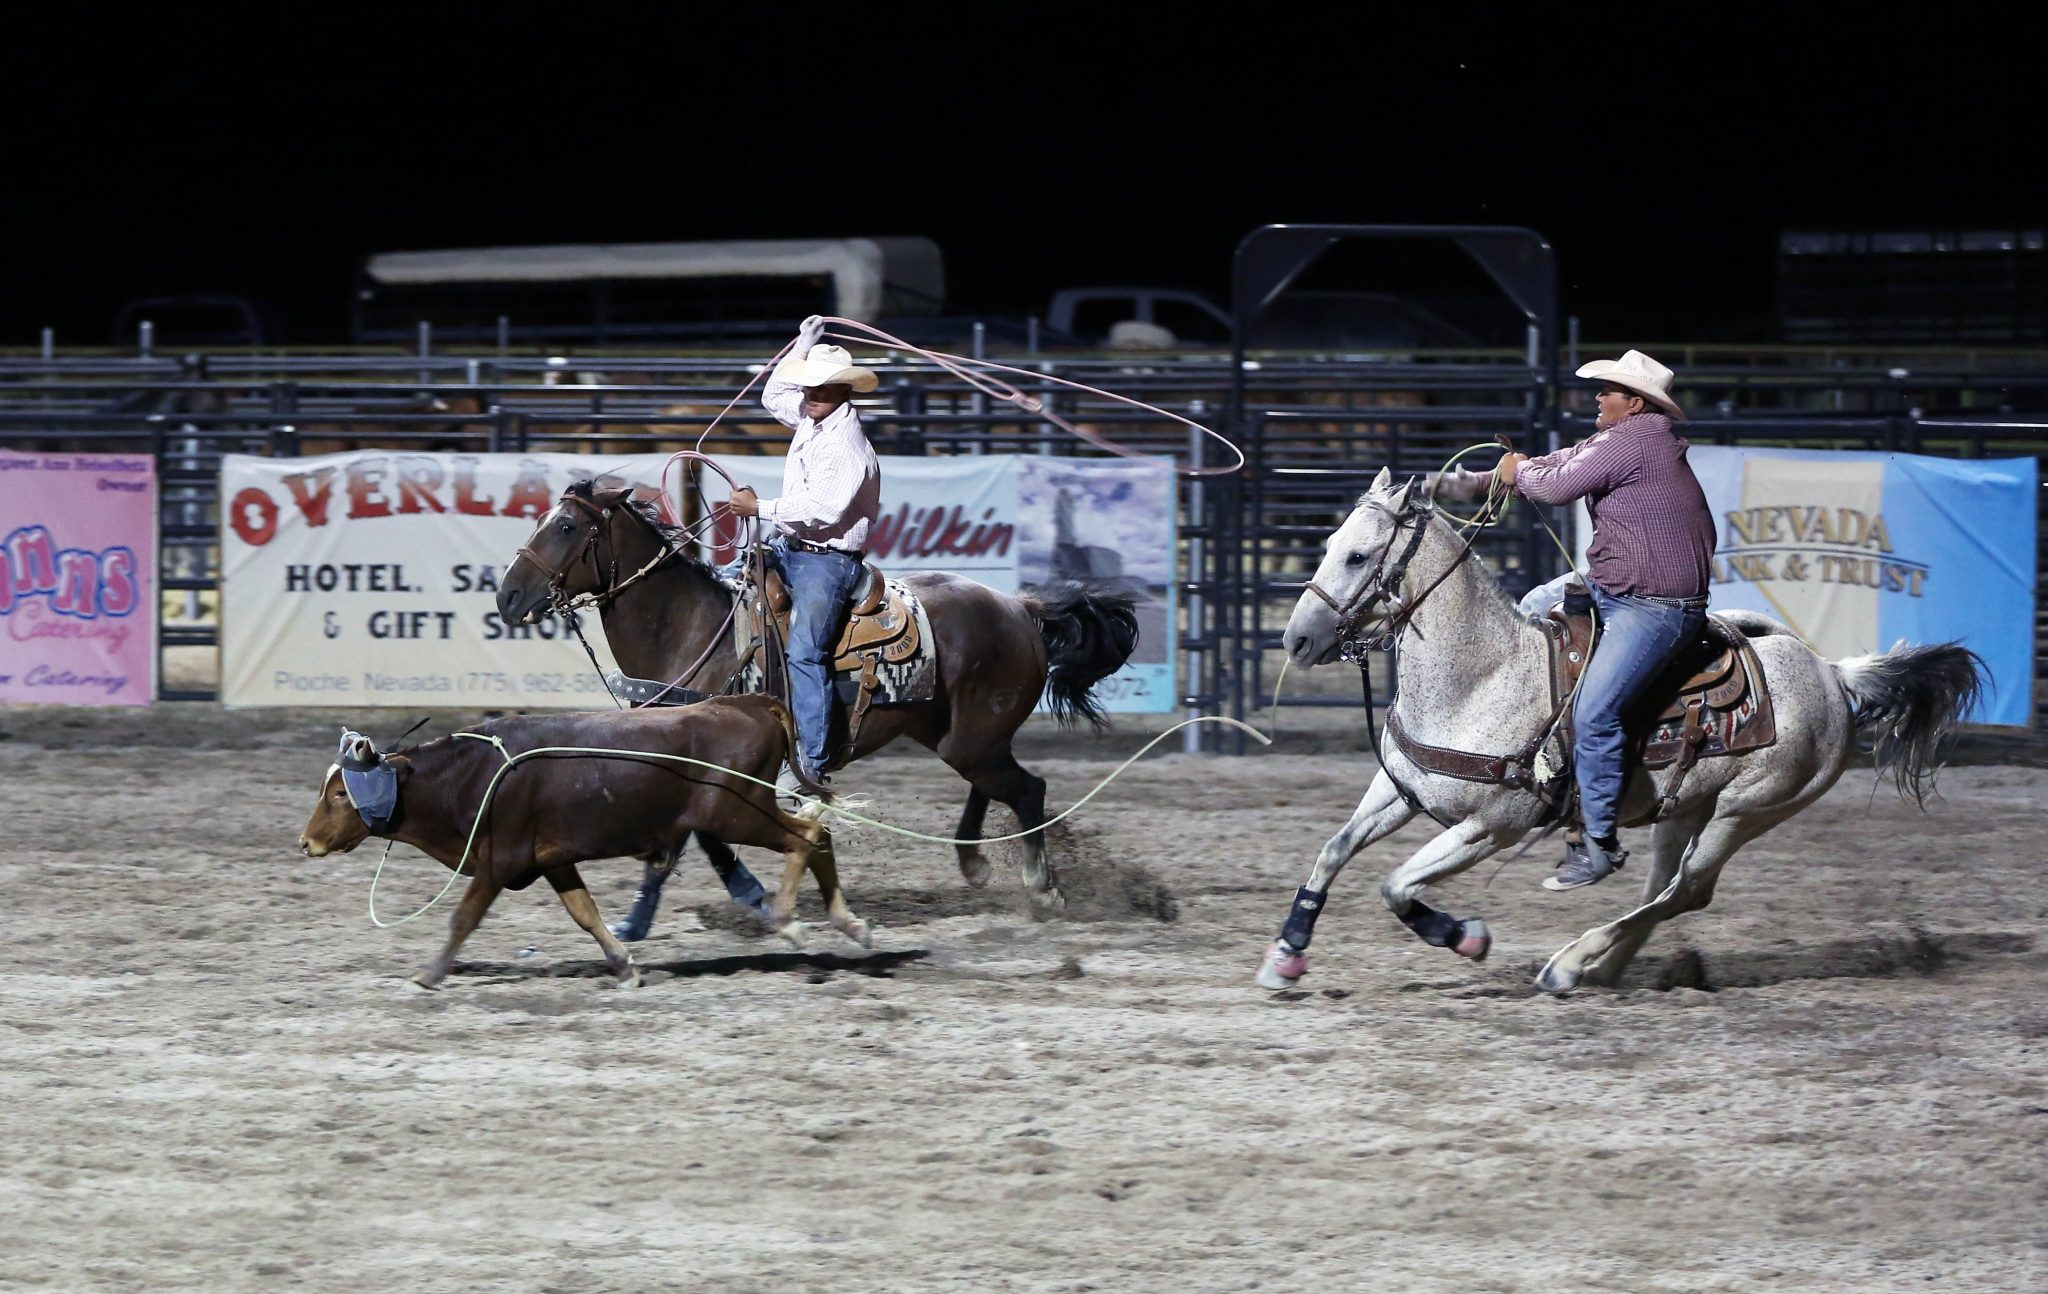 Fair and rodeo impresses once again